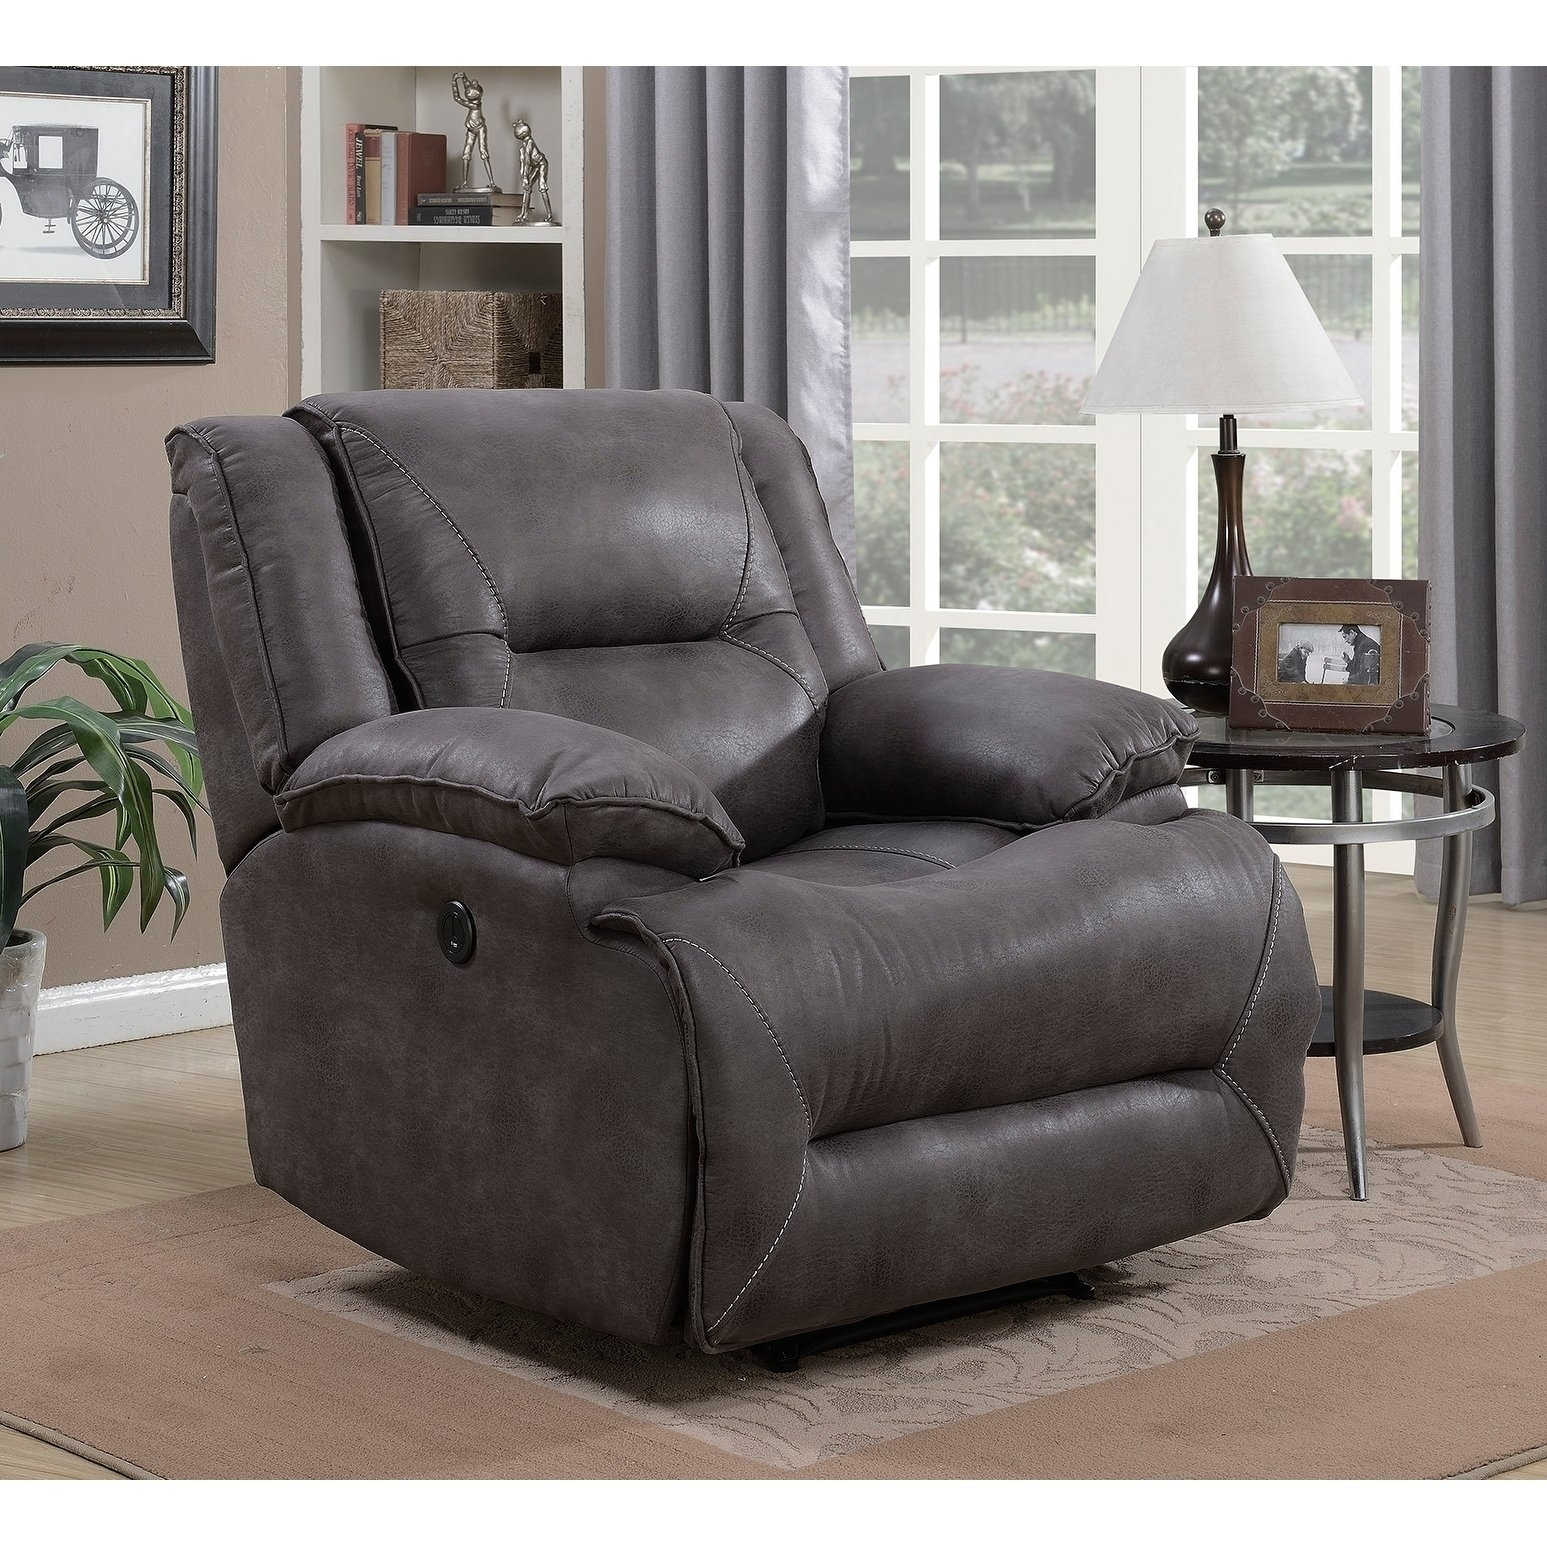 Shop Dylan Power Recliner With Memory Foam Seat Topper And Usb In Travis Dk Grey Leather 6 Piece Power Reclining Sectionals With Power Headrest & Usb (View 8 of 25)